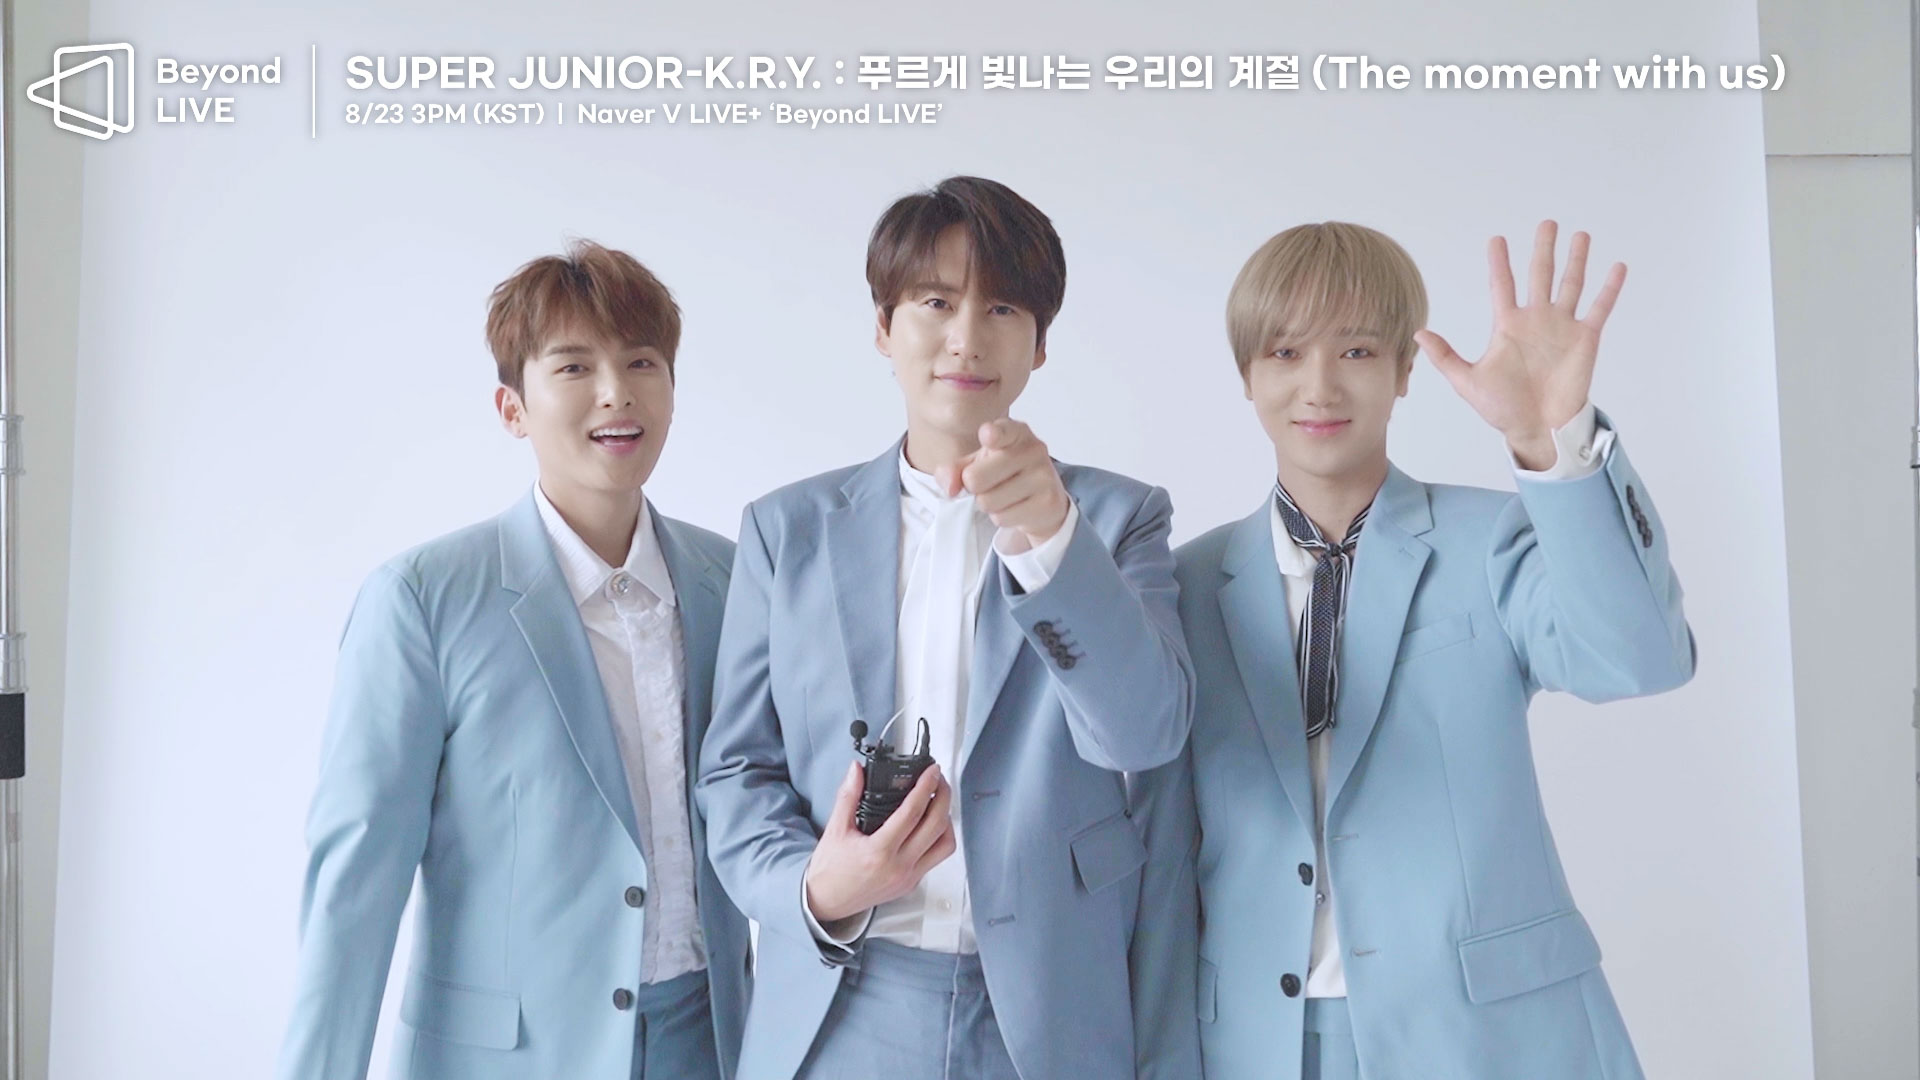 'Beyond LIVE - SUPER JUNIOR-K.R.Y. : 푸르게 빛나는 우리의 계절 (The moment with us)' Poster Shoot Making